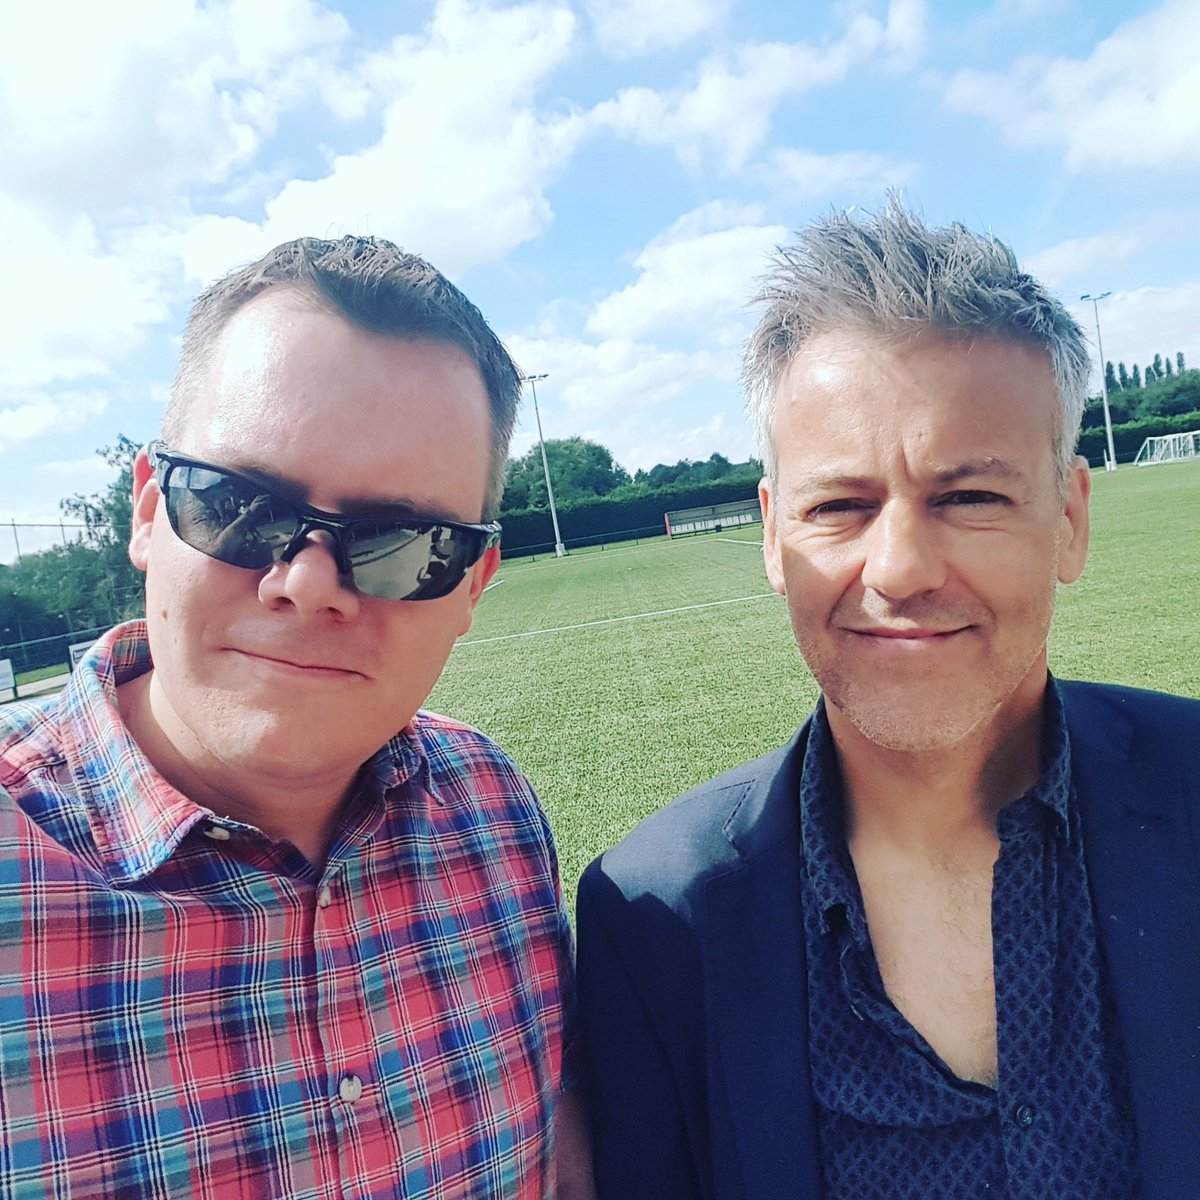 A quick photo with @_RupertGraves  from Sherlock! Great to meet you! ☺️ #PBOvsCancer https://t.co/3GKCodhtby